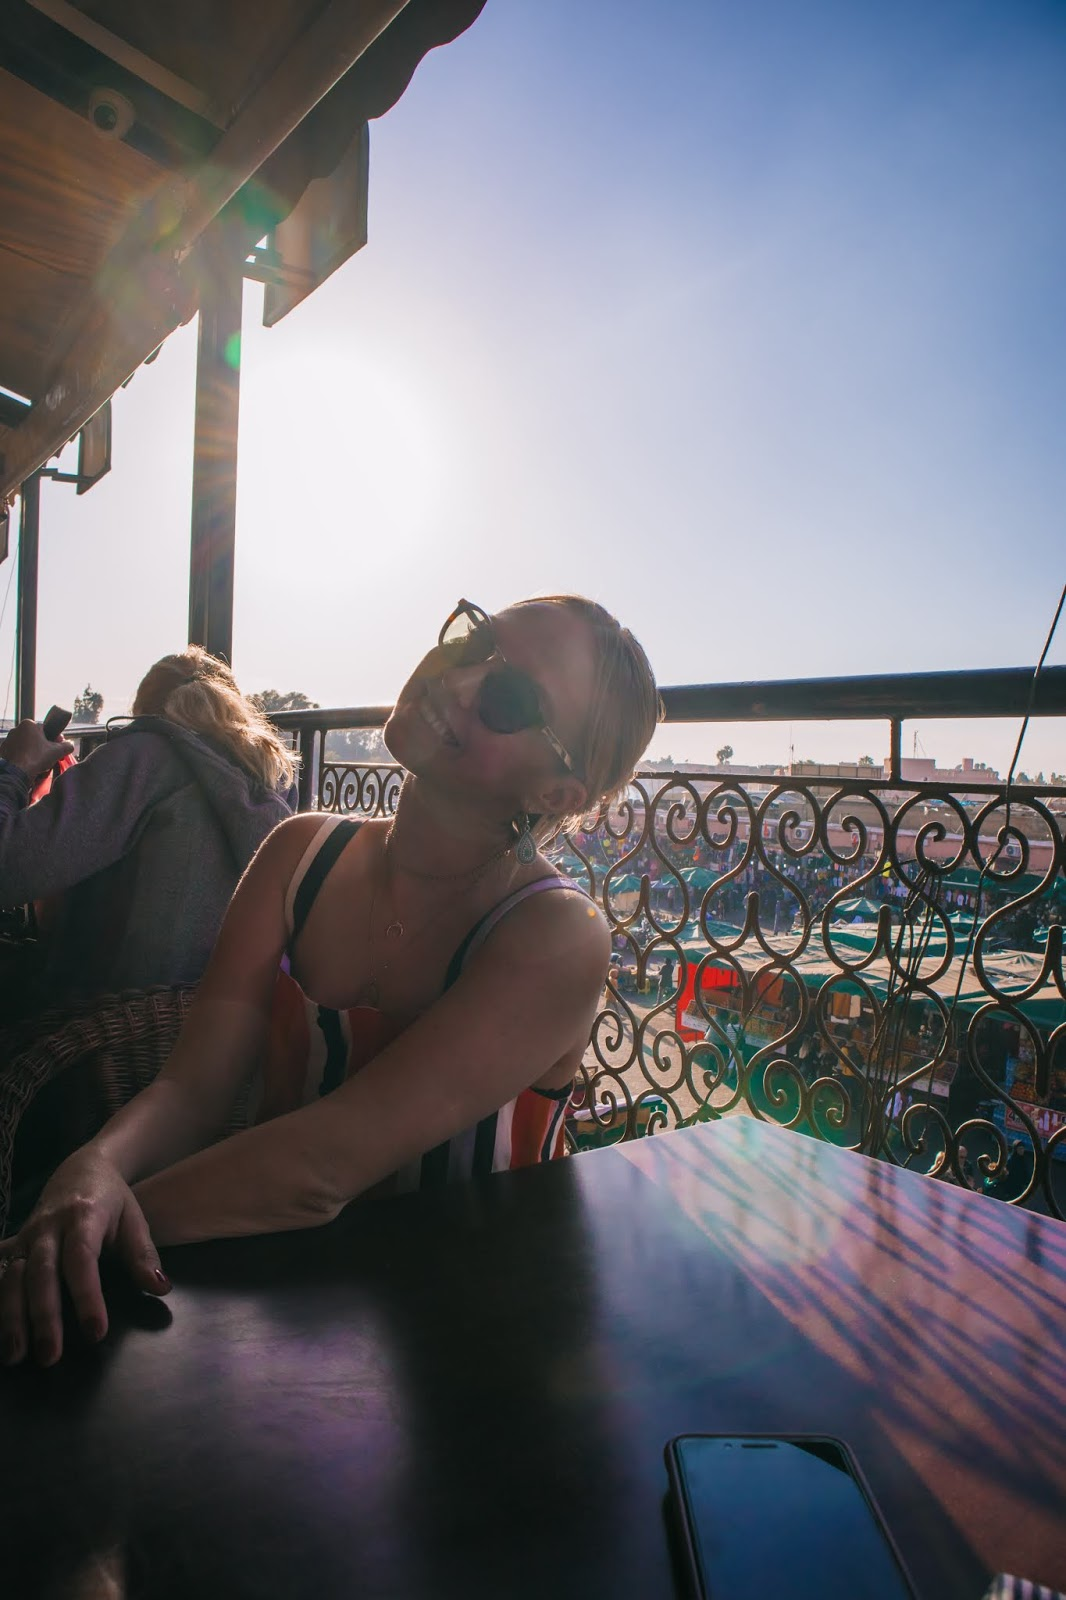 Suz and the Sun, Suz and the Sun travel, Marrakesh 2018, Marrakesh travel, Suz and the Sun style, Cafe de France, Cafe de France sunset, Jemaa El-Fnaa square, Jemaa El-Fnaa Square sunset